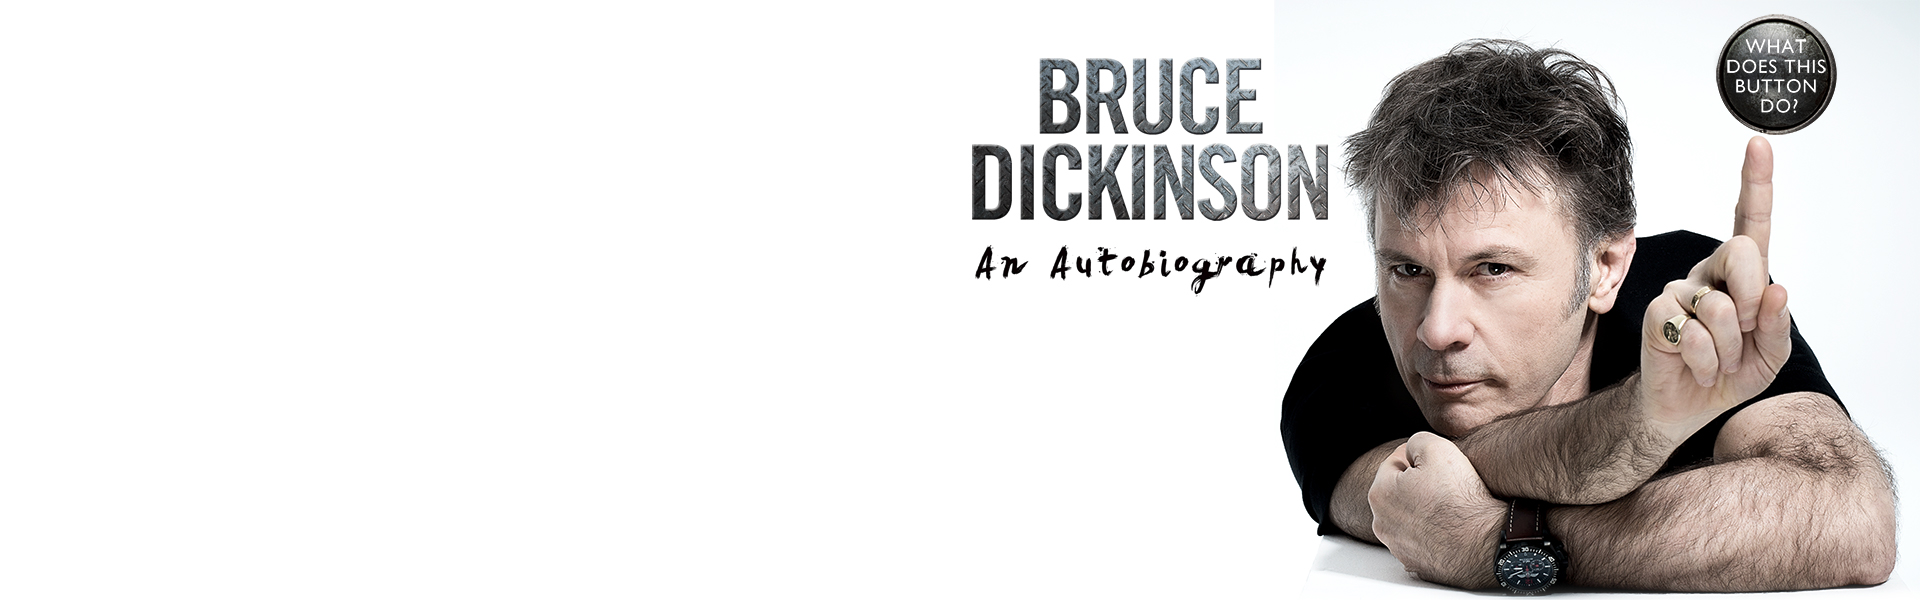 Bruce's UK Book Tour